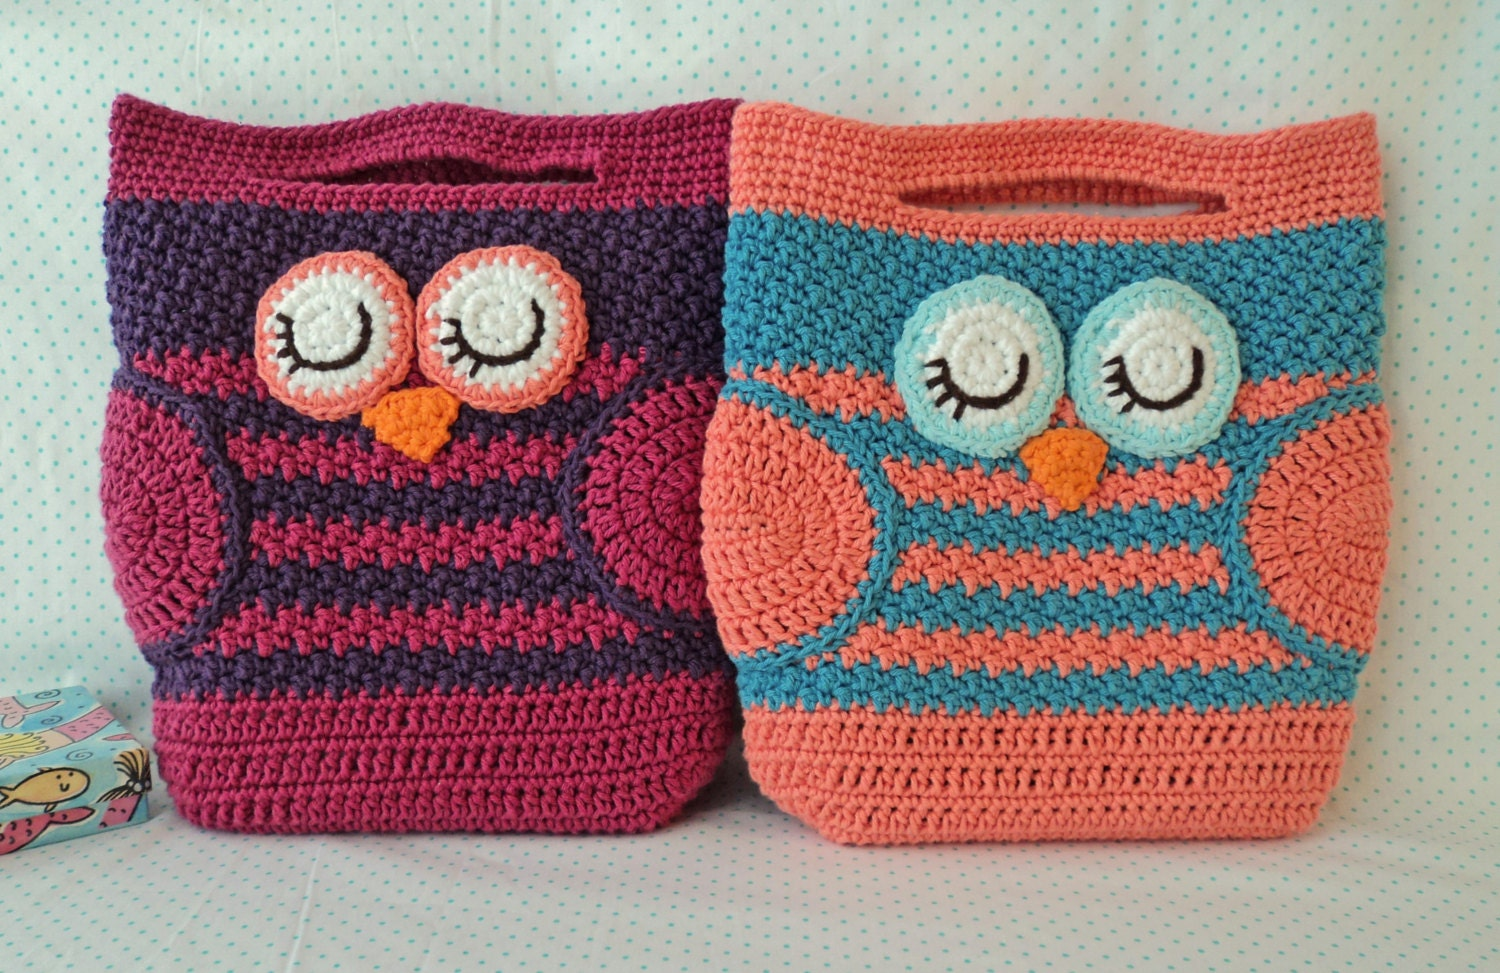 26 bags to knit crochet or sew etsy mini owl bag crochet pattern instant download bankloansurffo Gallery